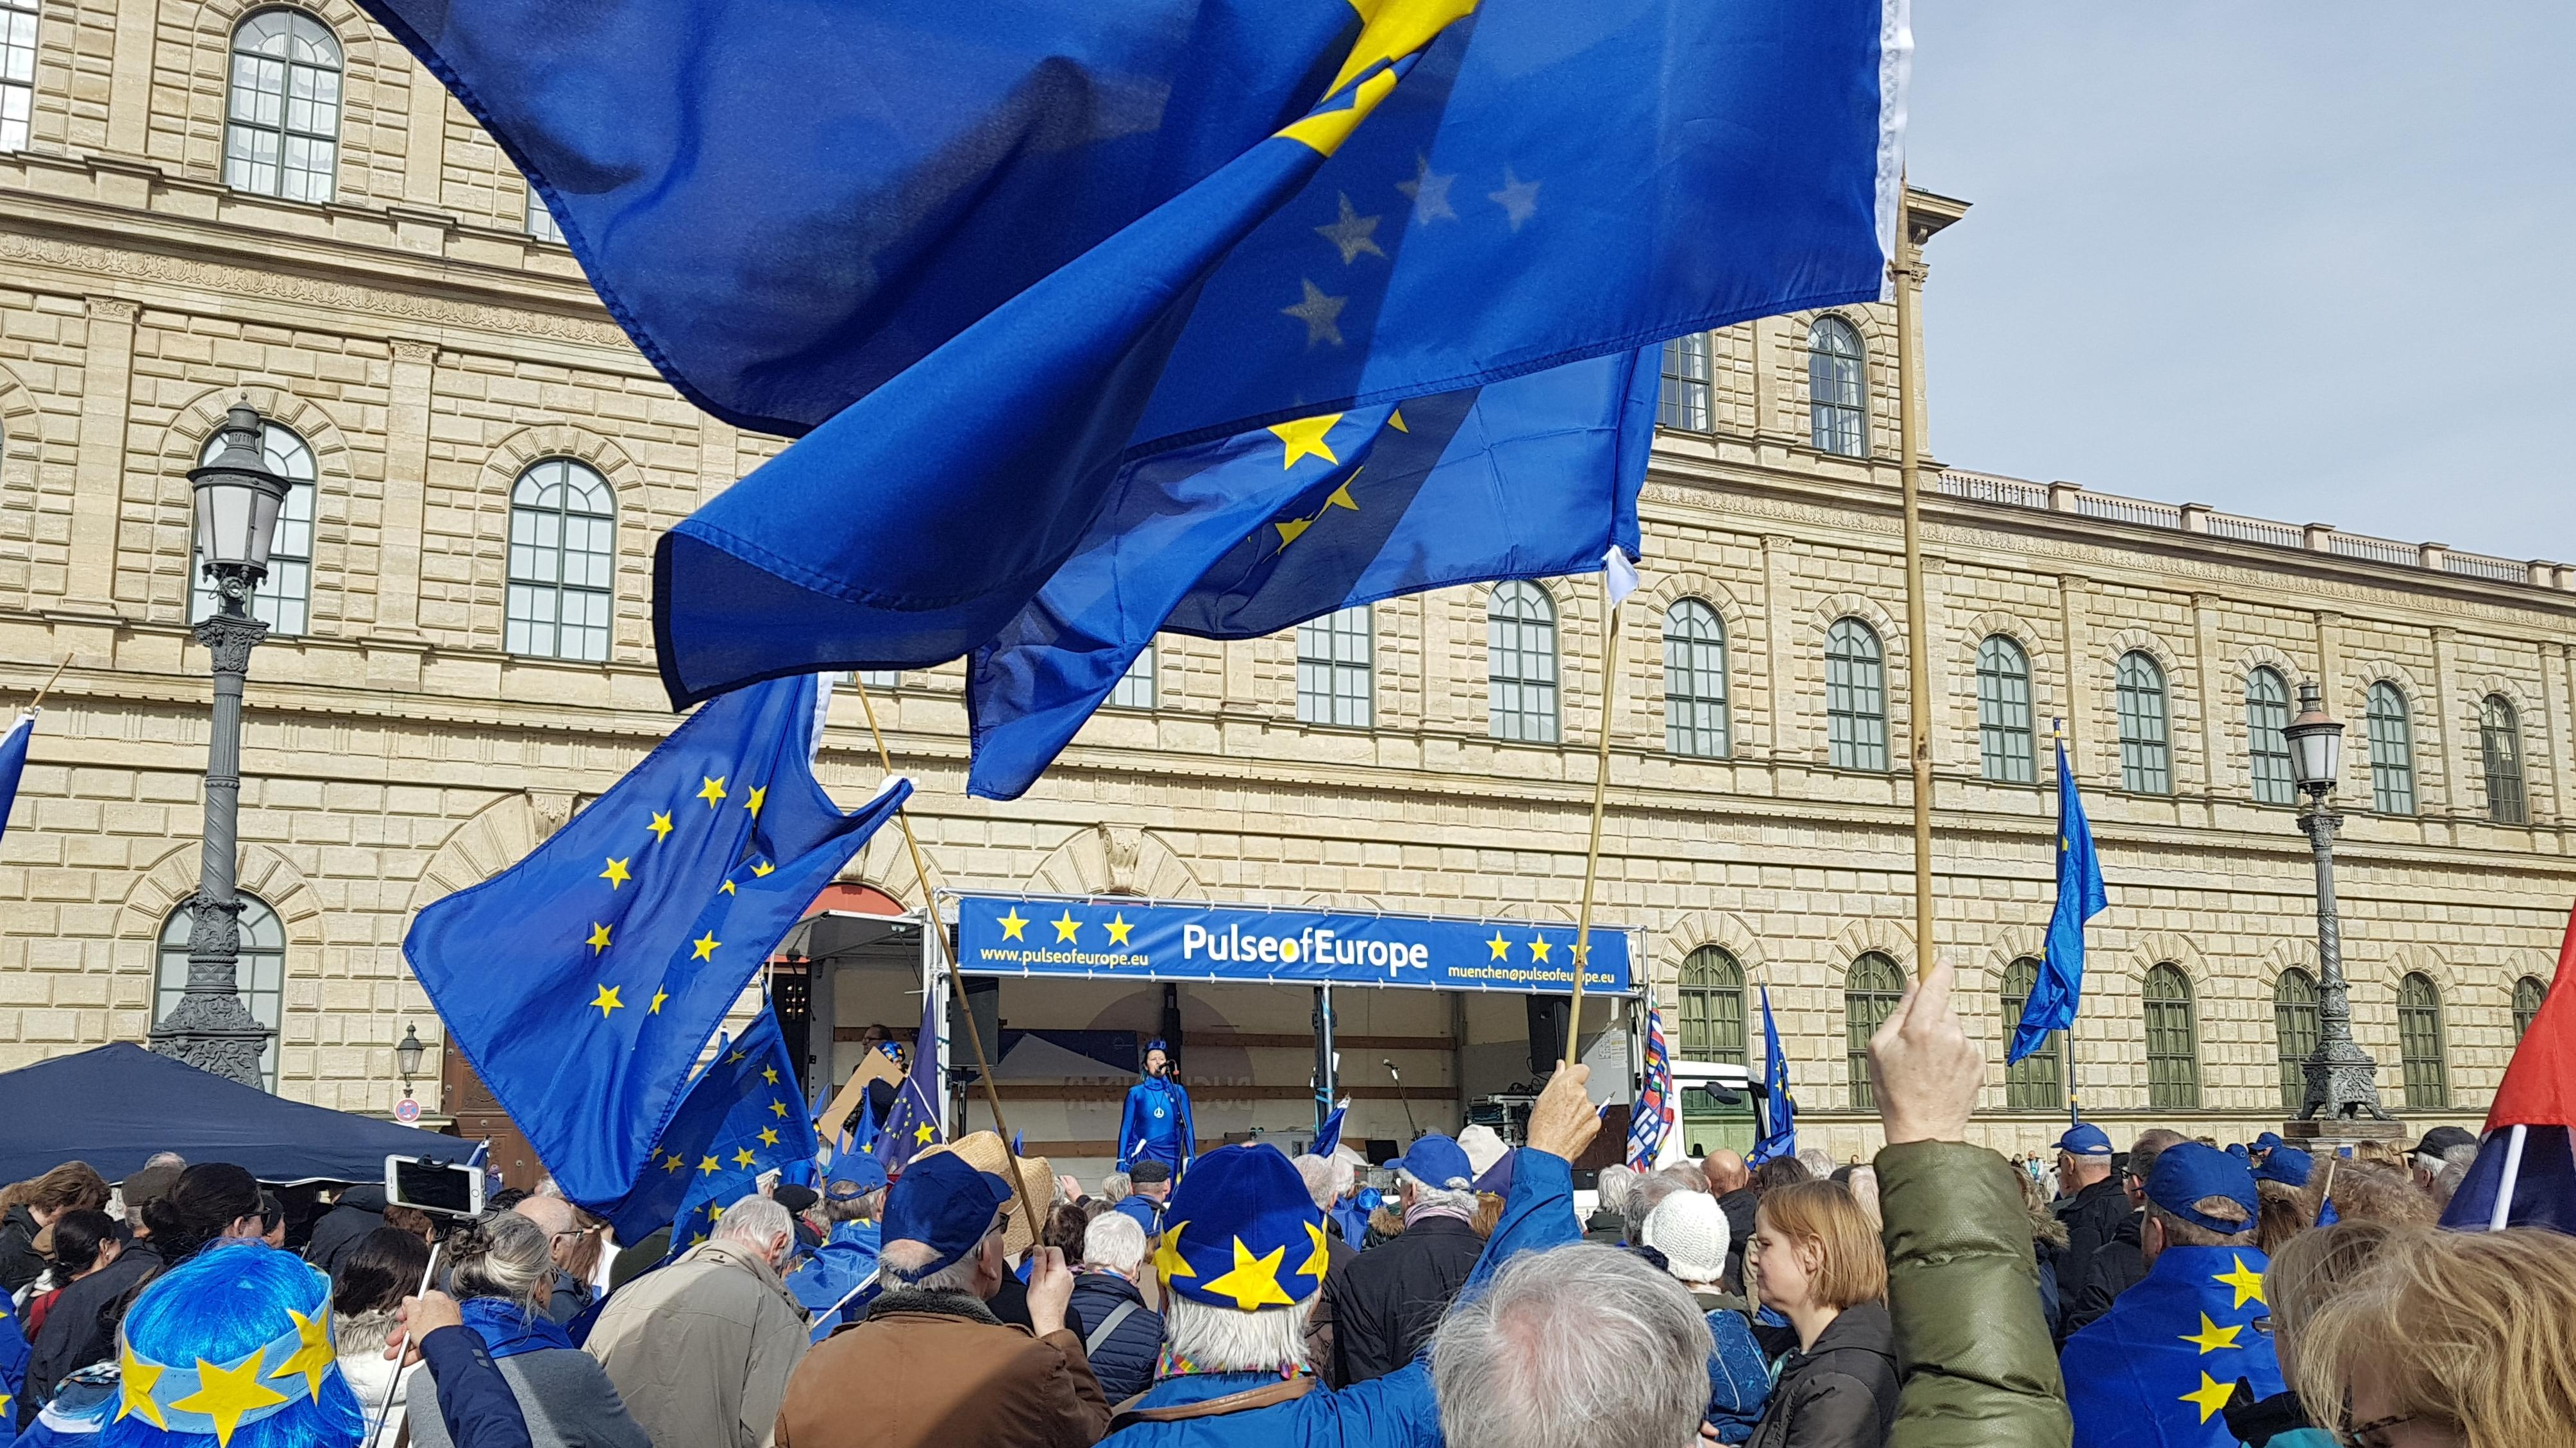 Pulse of Europe-Demo am 3. März in München.